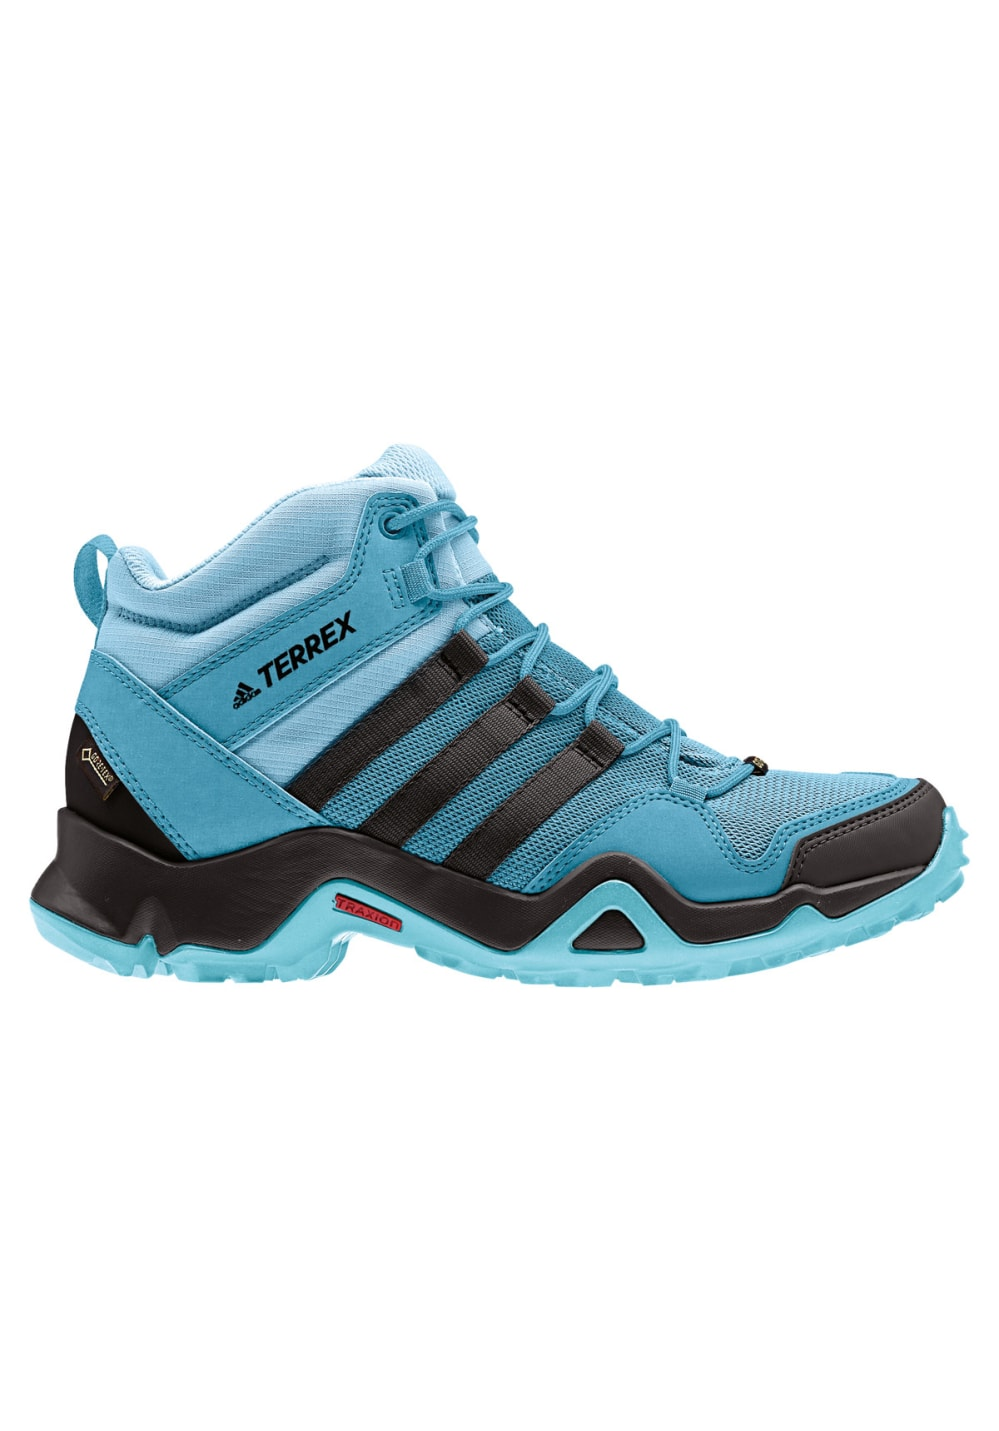 best website 5ed29 31892 Next. -50%. This product is currently out of stock. adidas. TERREX AX2R GTX  Mid - Outdoor shoes for Women